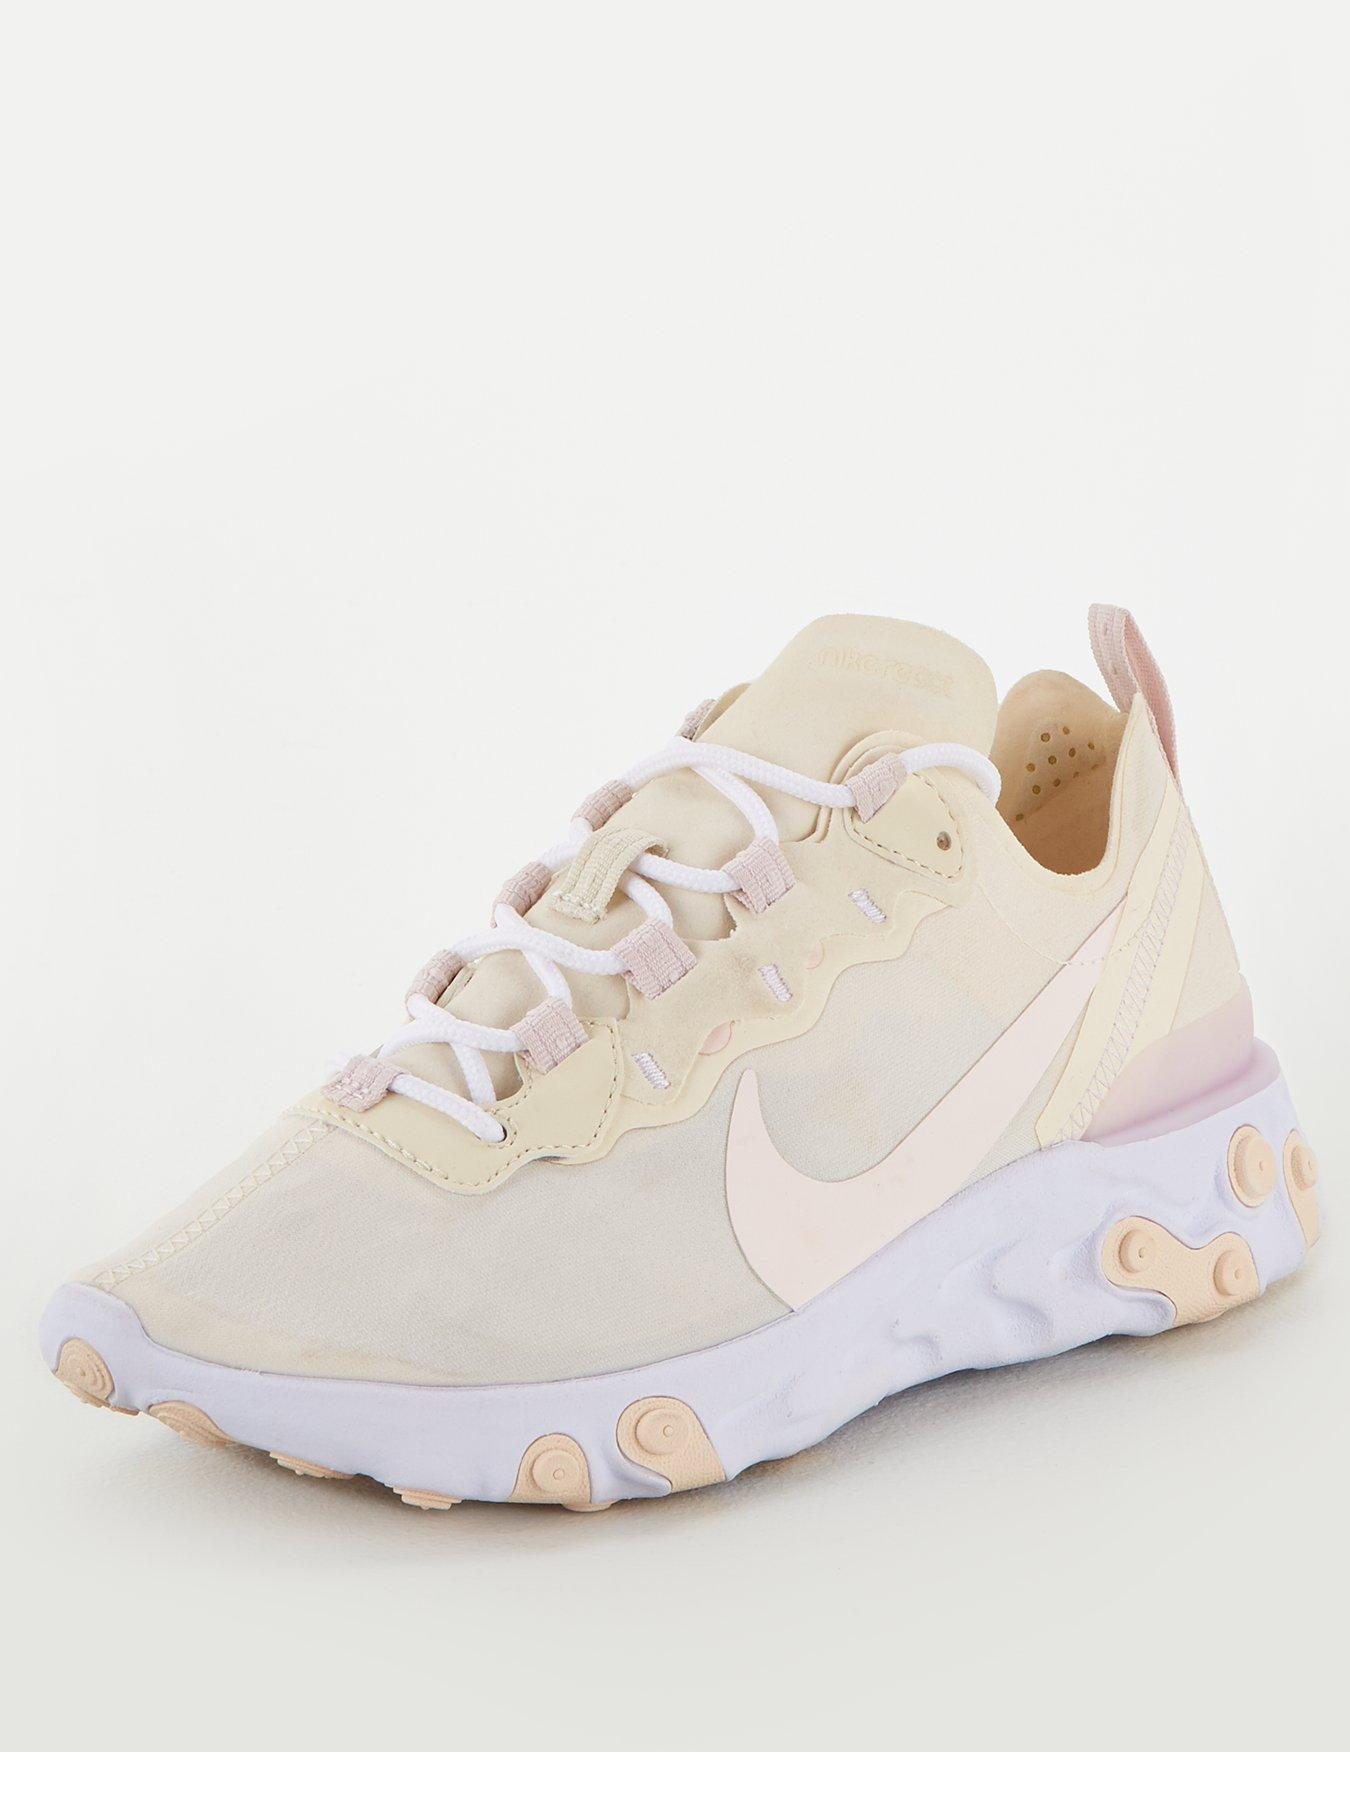 Nike Air Max Classic BW [Womens] Shoes Outlet 199